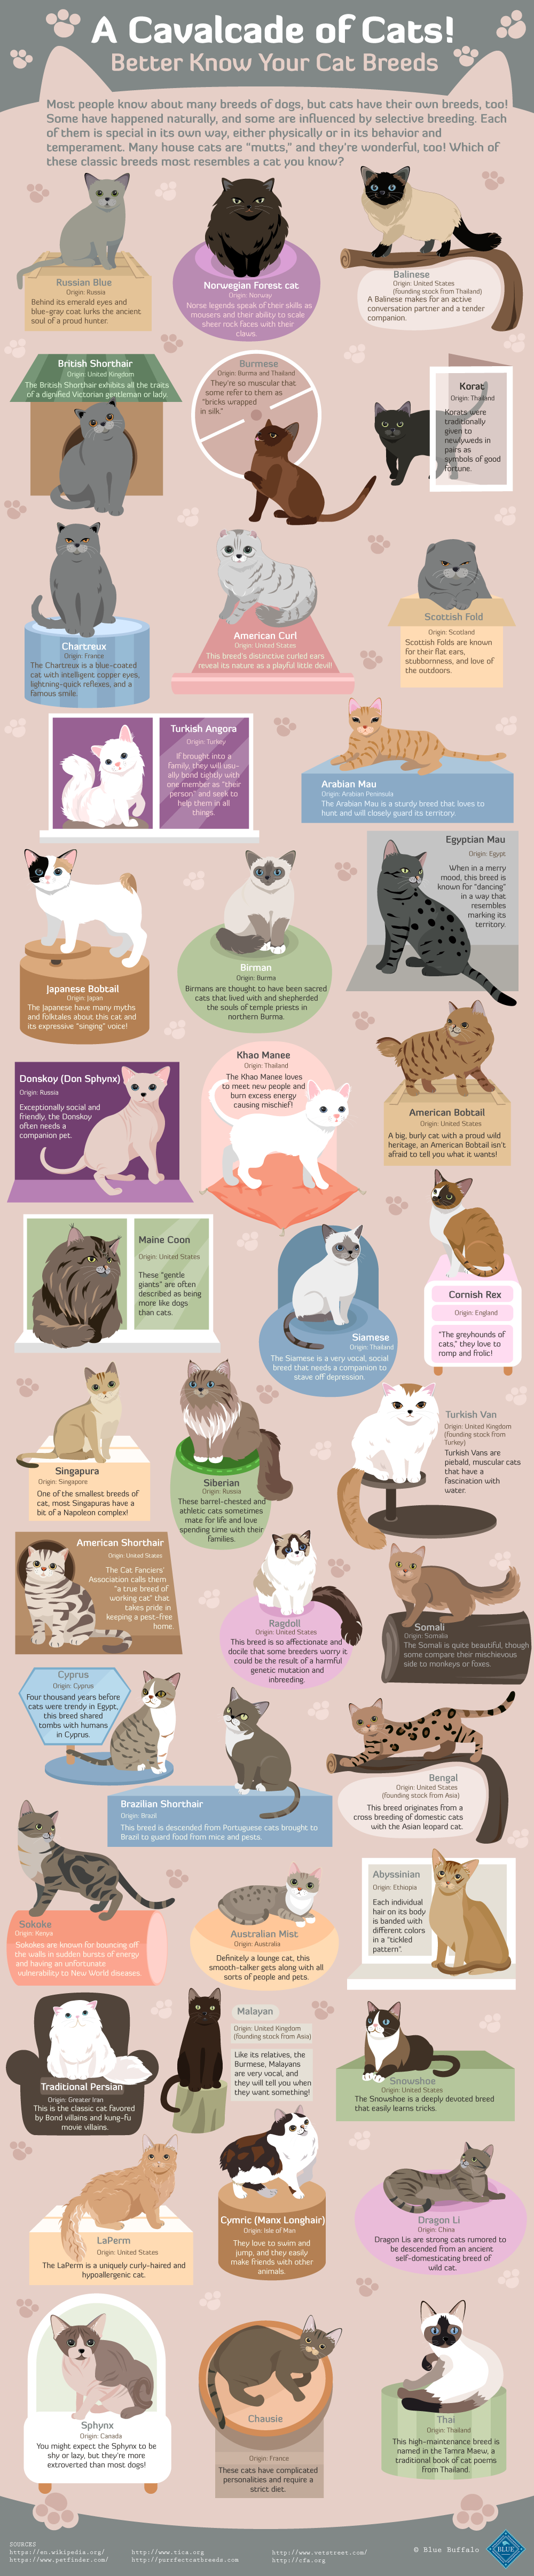 Cat breeds around the world